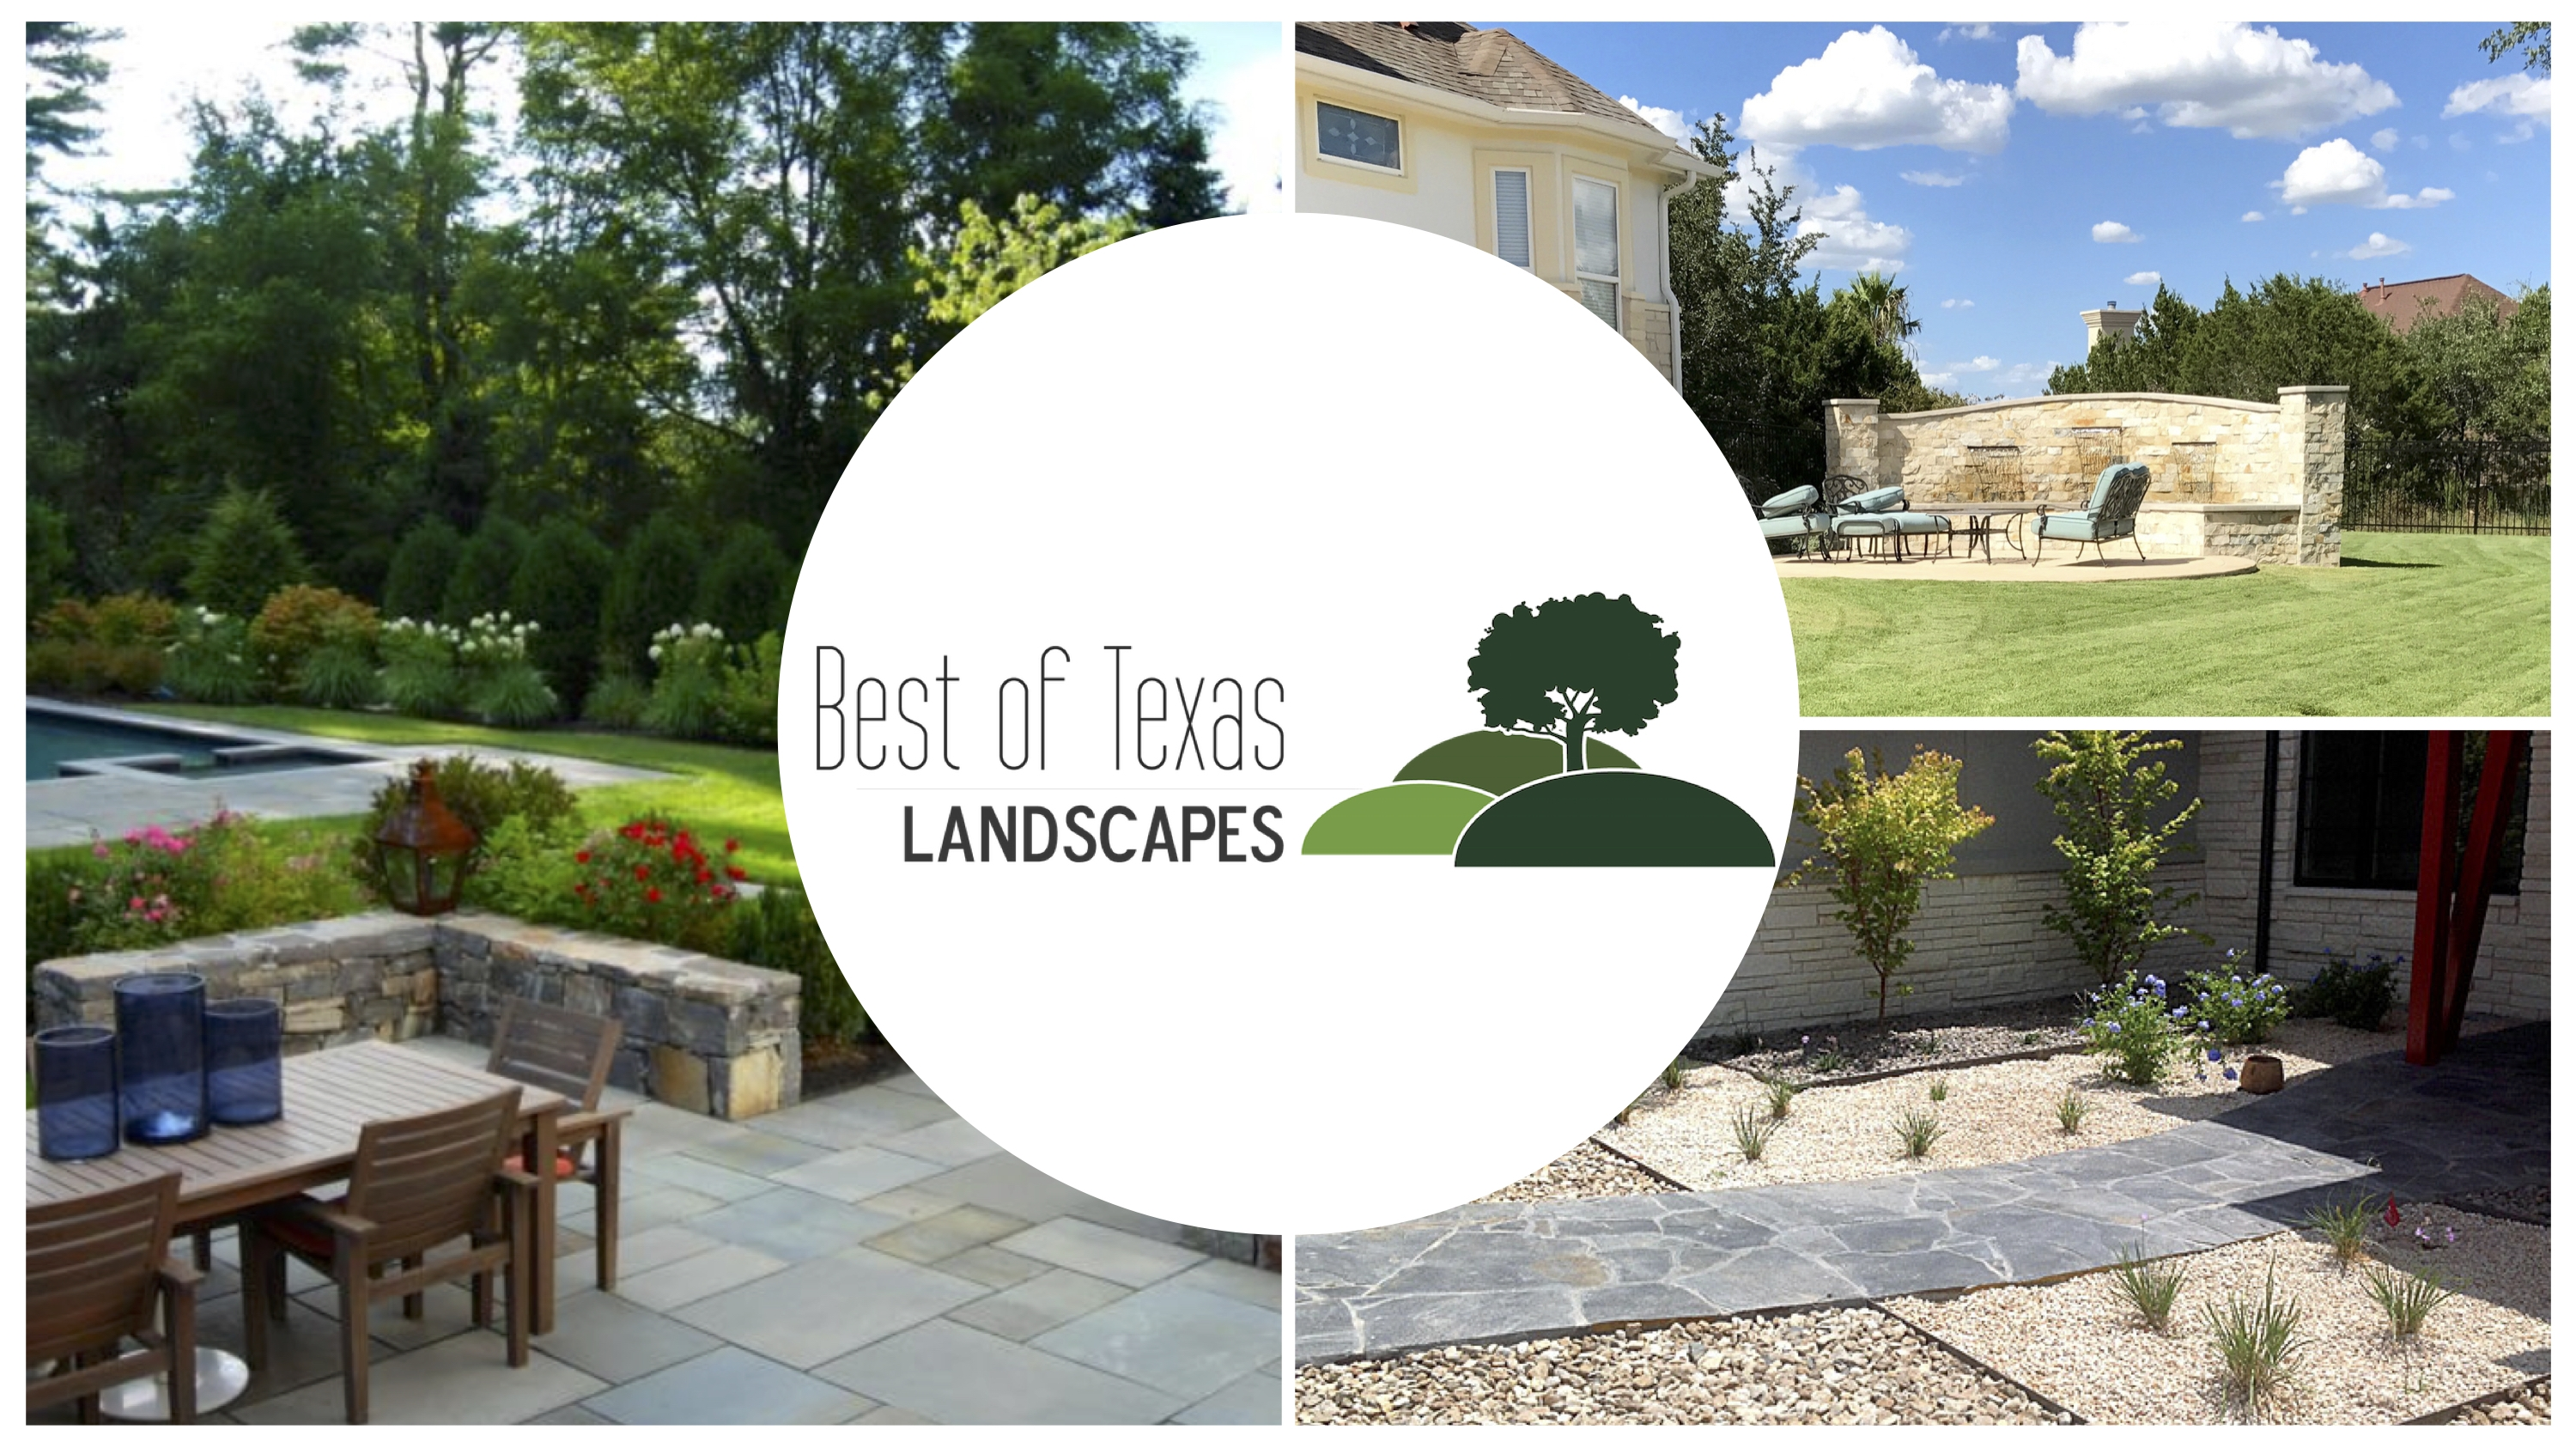 Landscape Design-Build services in Georgetown, Texas by Best of Texas Landscapes